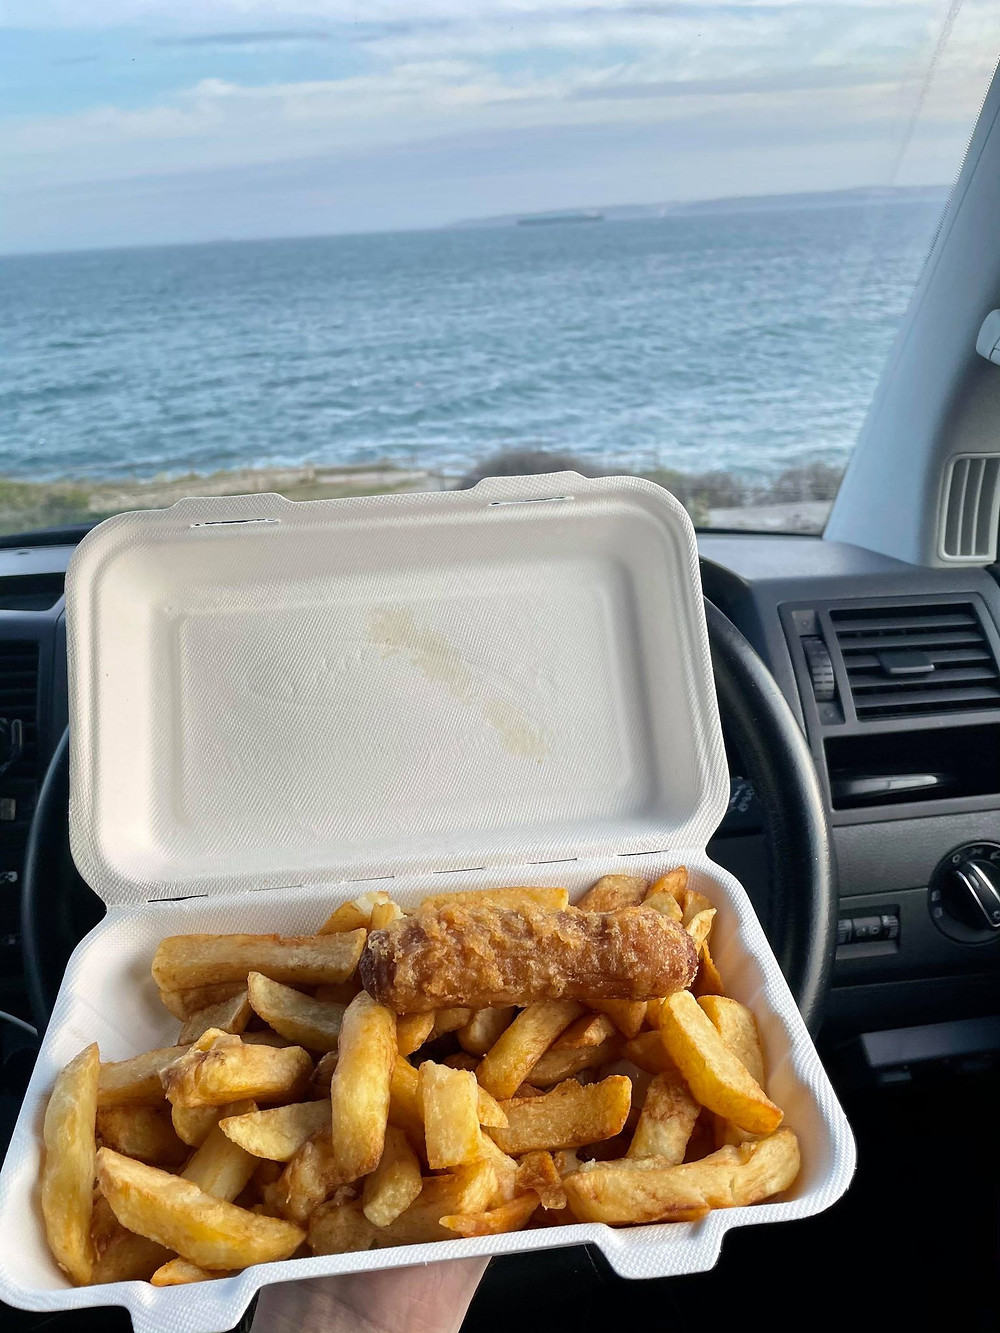 View from the drivers seat, Ross's wrist holding a tray of sausage and chips with the sea in the background